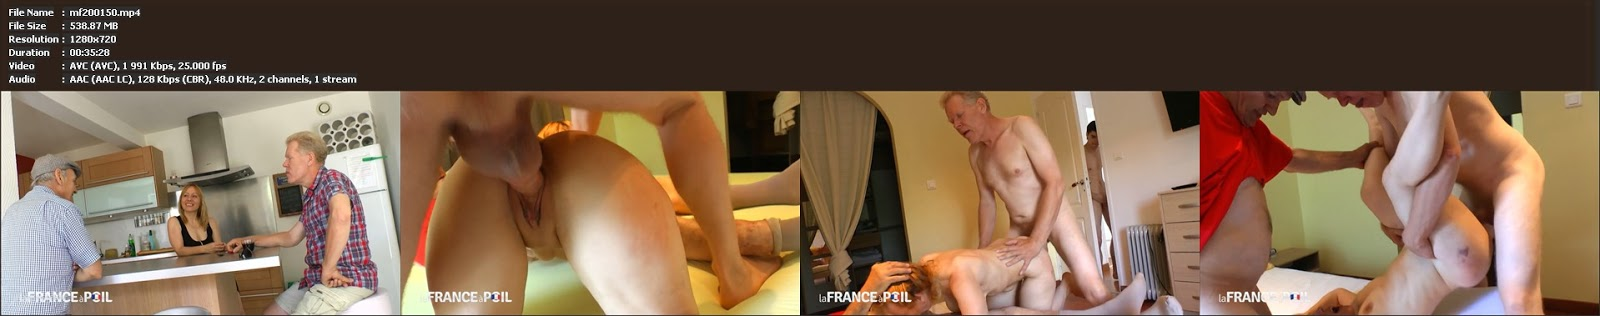 archive anal franch matur